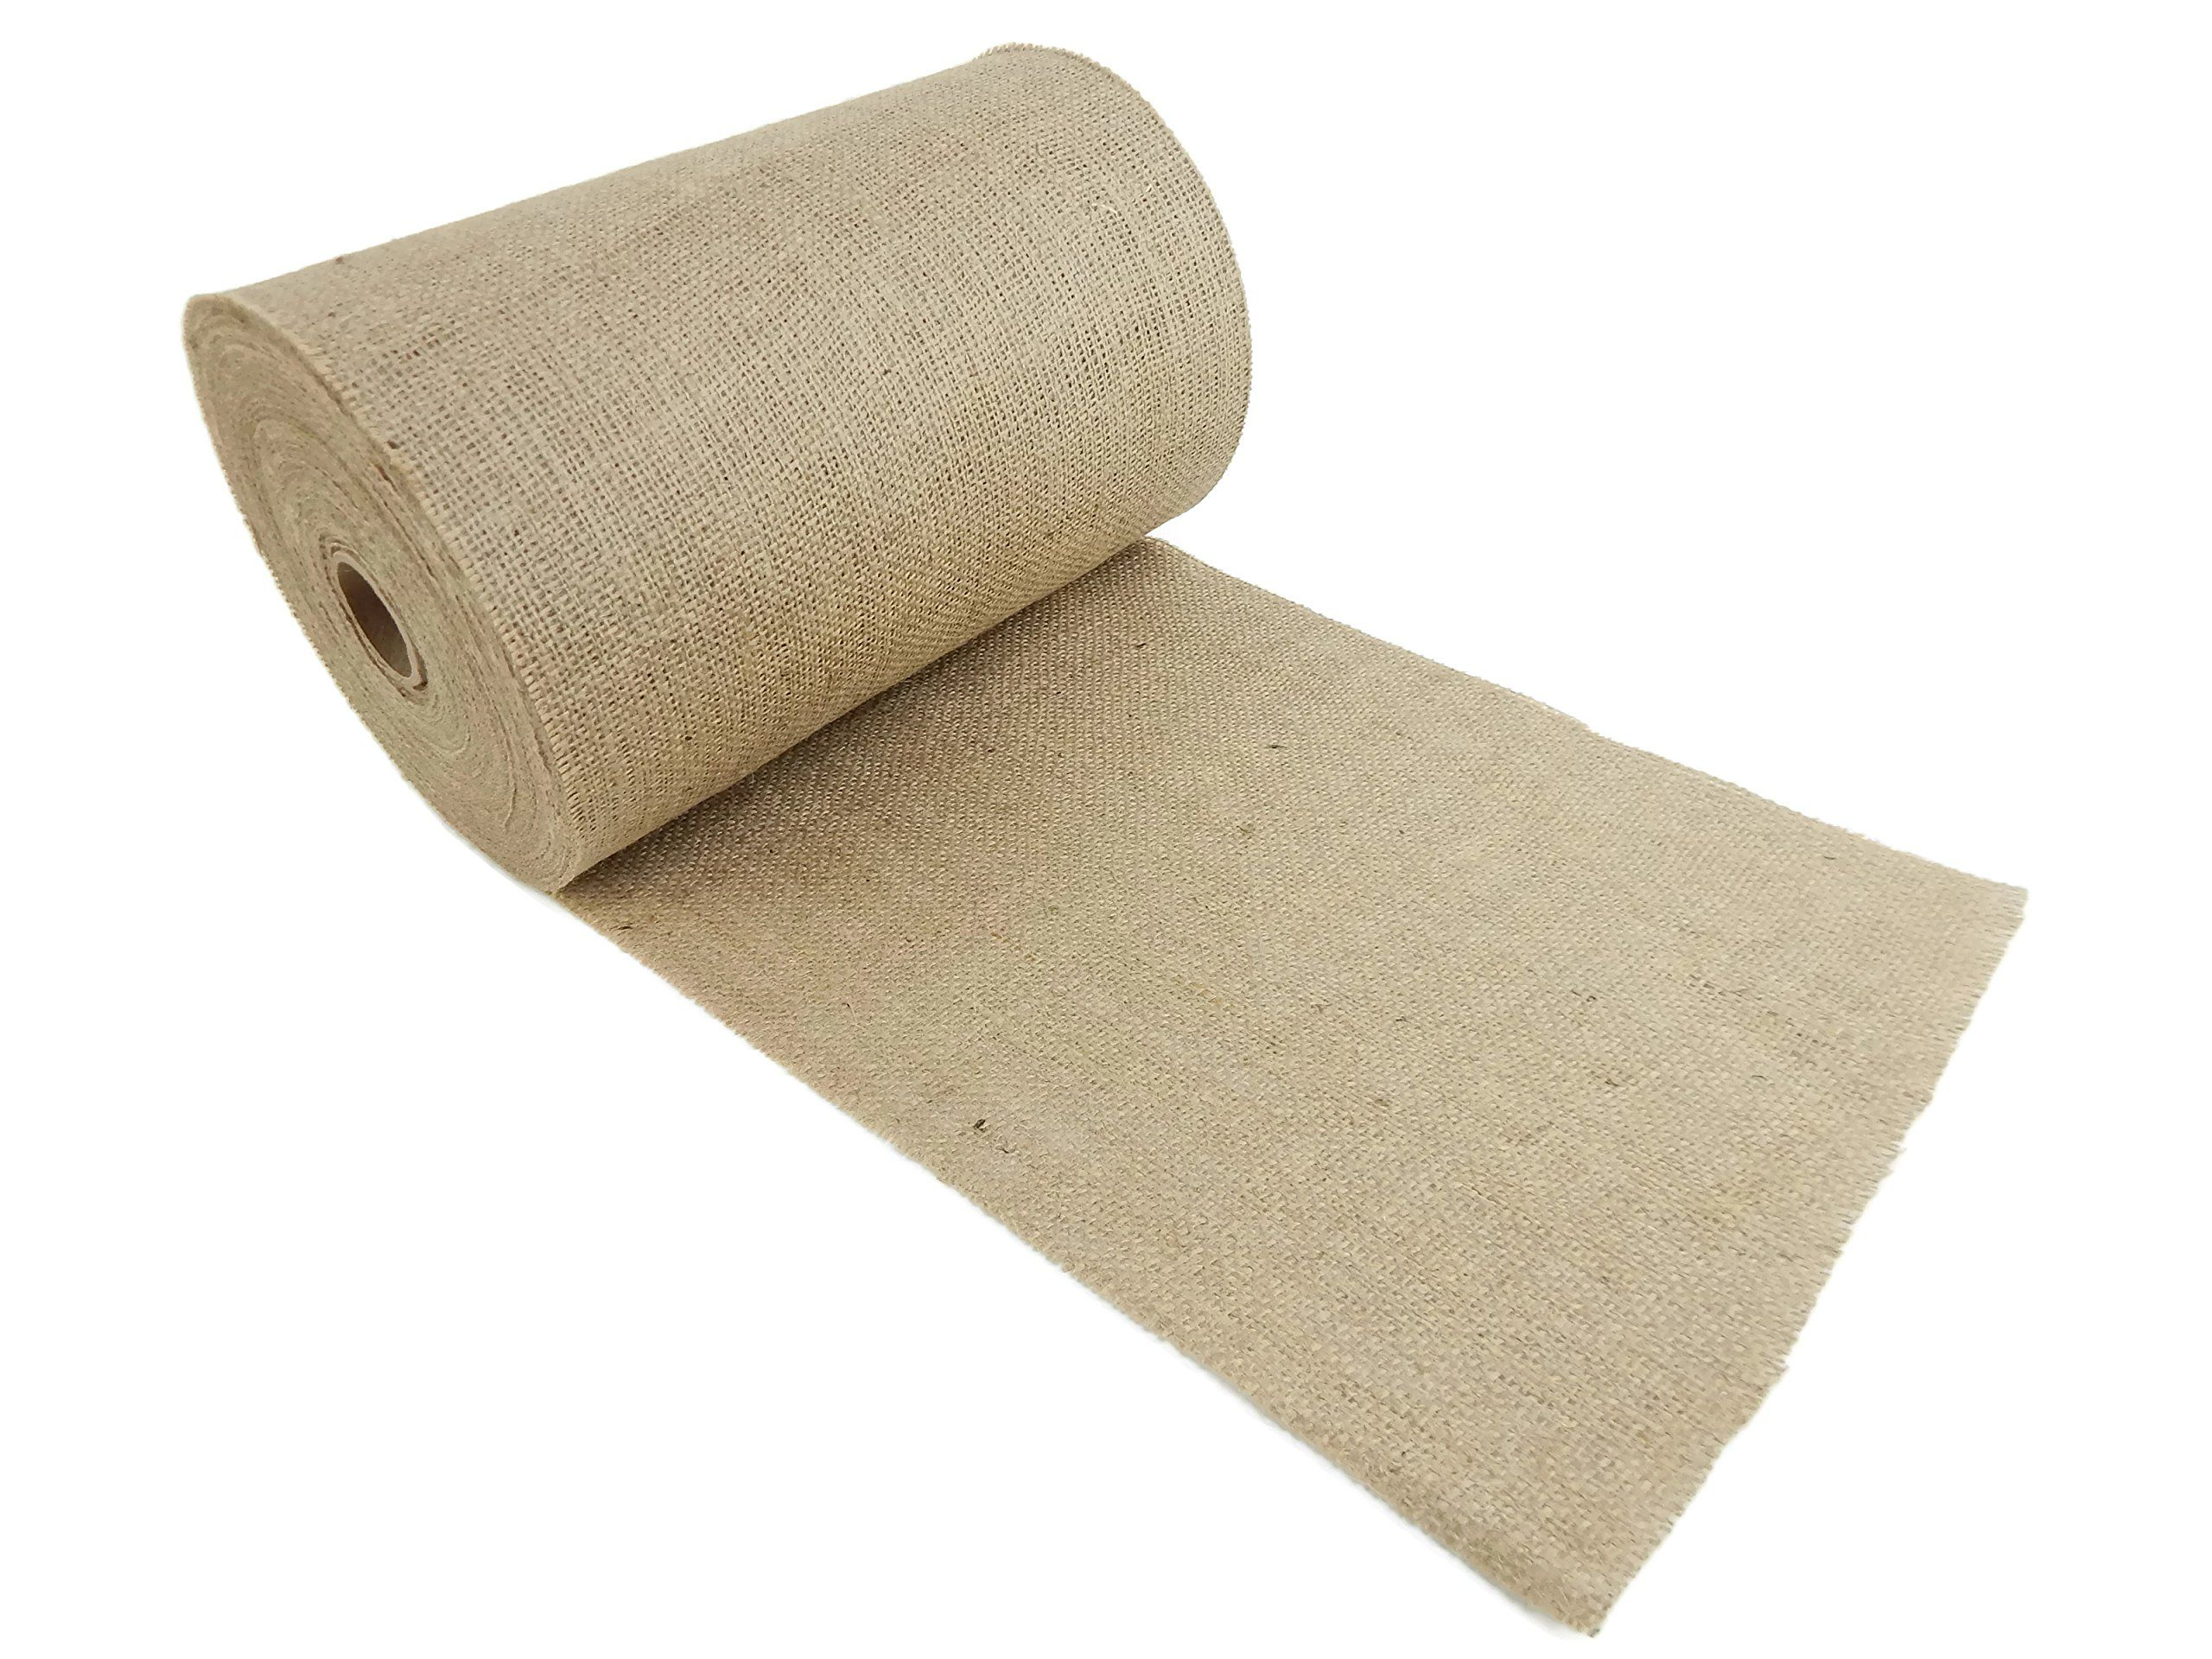 Burlap And Beyond 12 Natural Burlap Roll 100 Yards Ecofriendly Jute Burlap Fabric Unfinished Edges 12 Inch Check This Awesome Product By Going To The Link